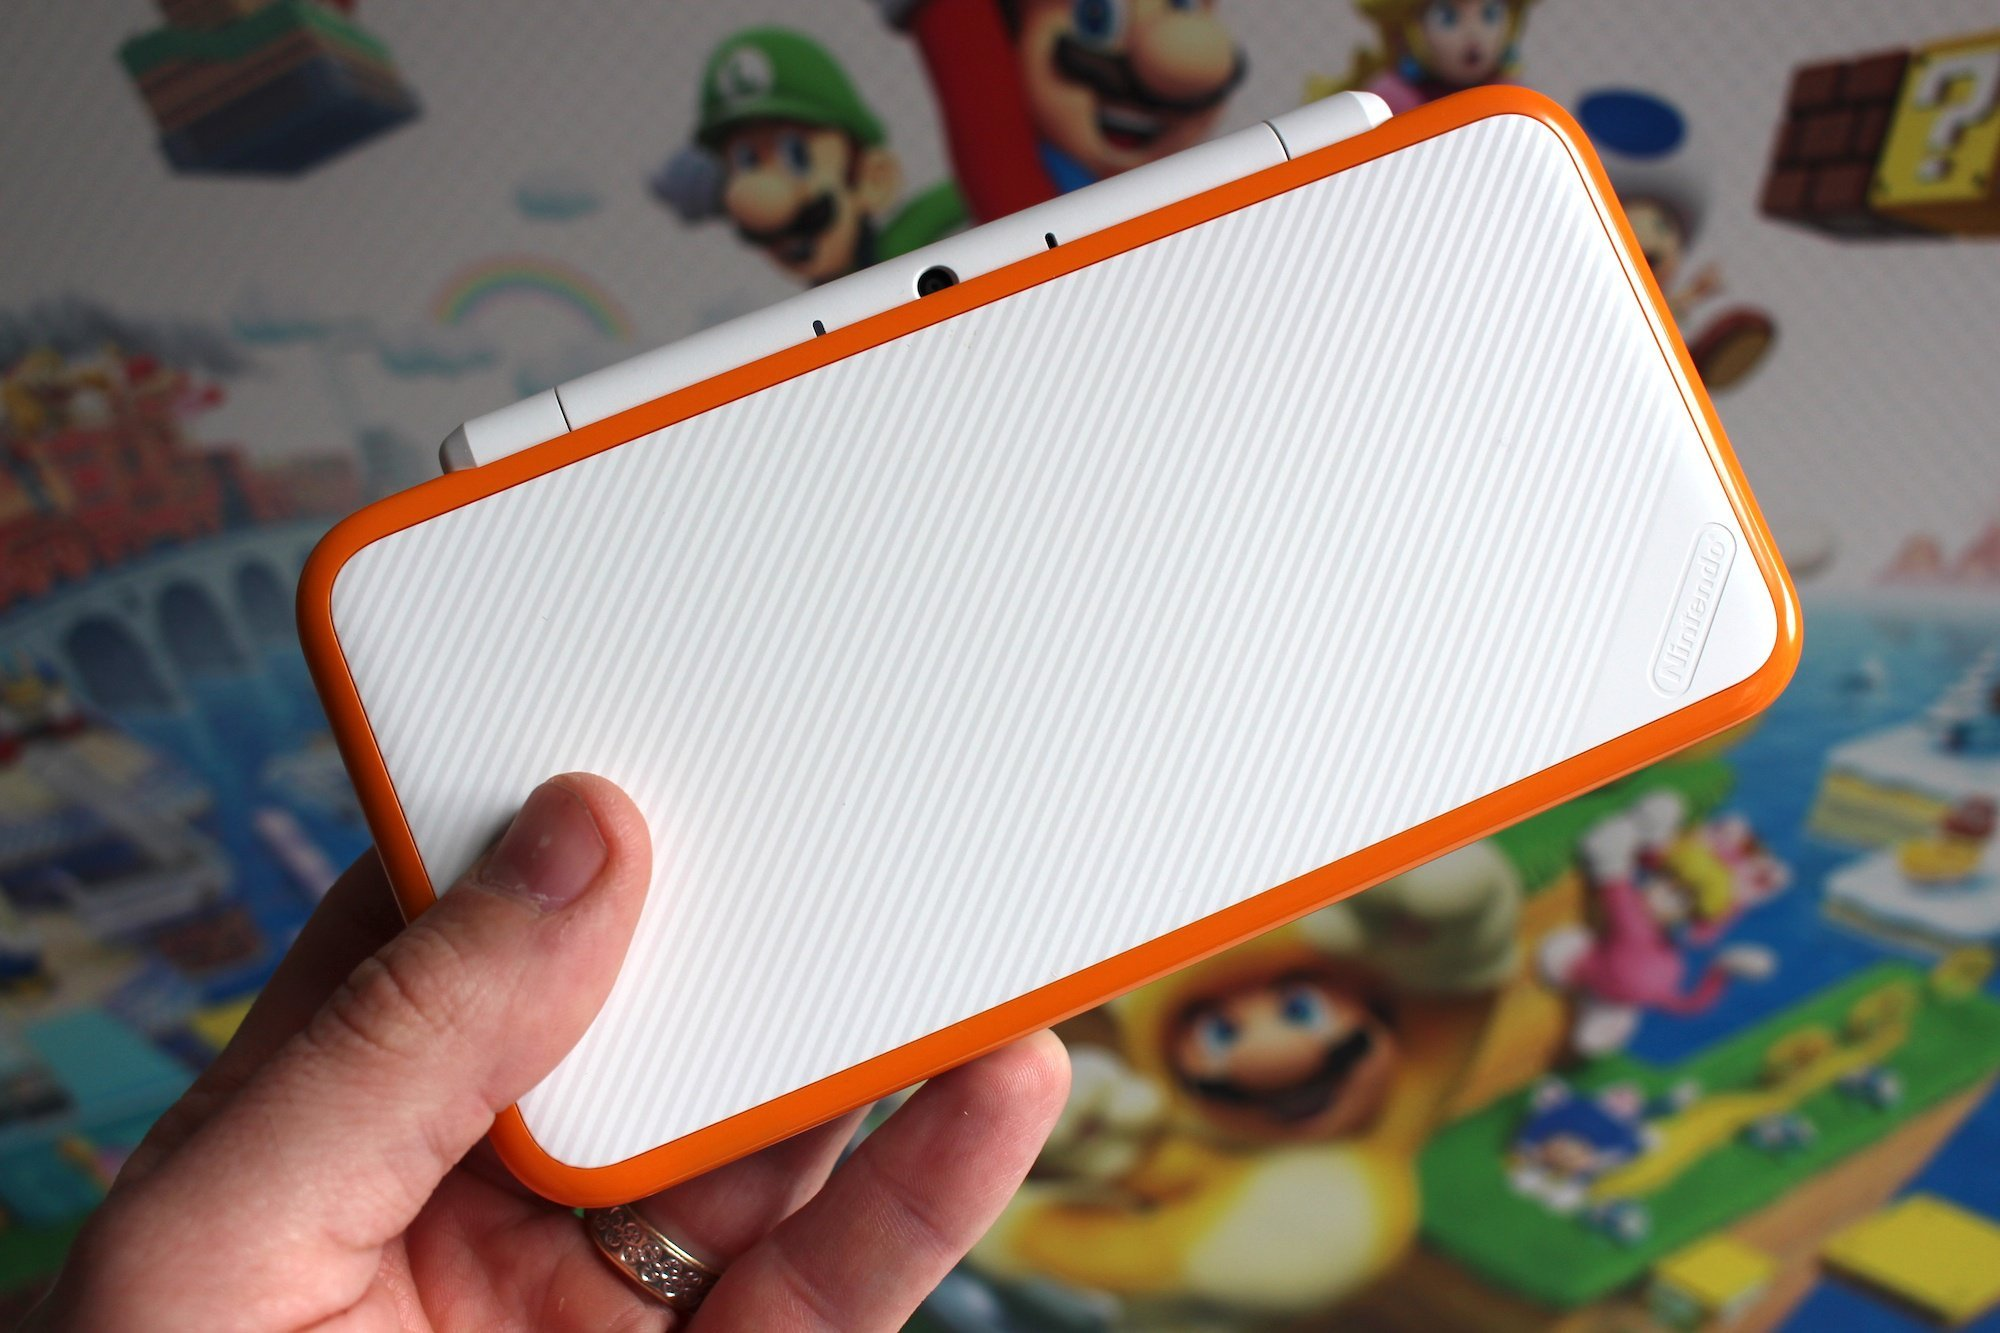 New 2DS XL Tops Japanese Hardware Chart As Switch Sales Plunge Amid